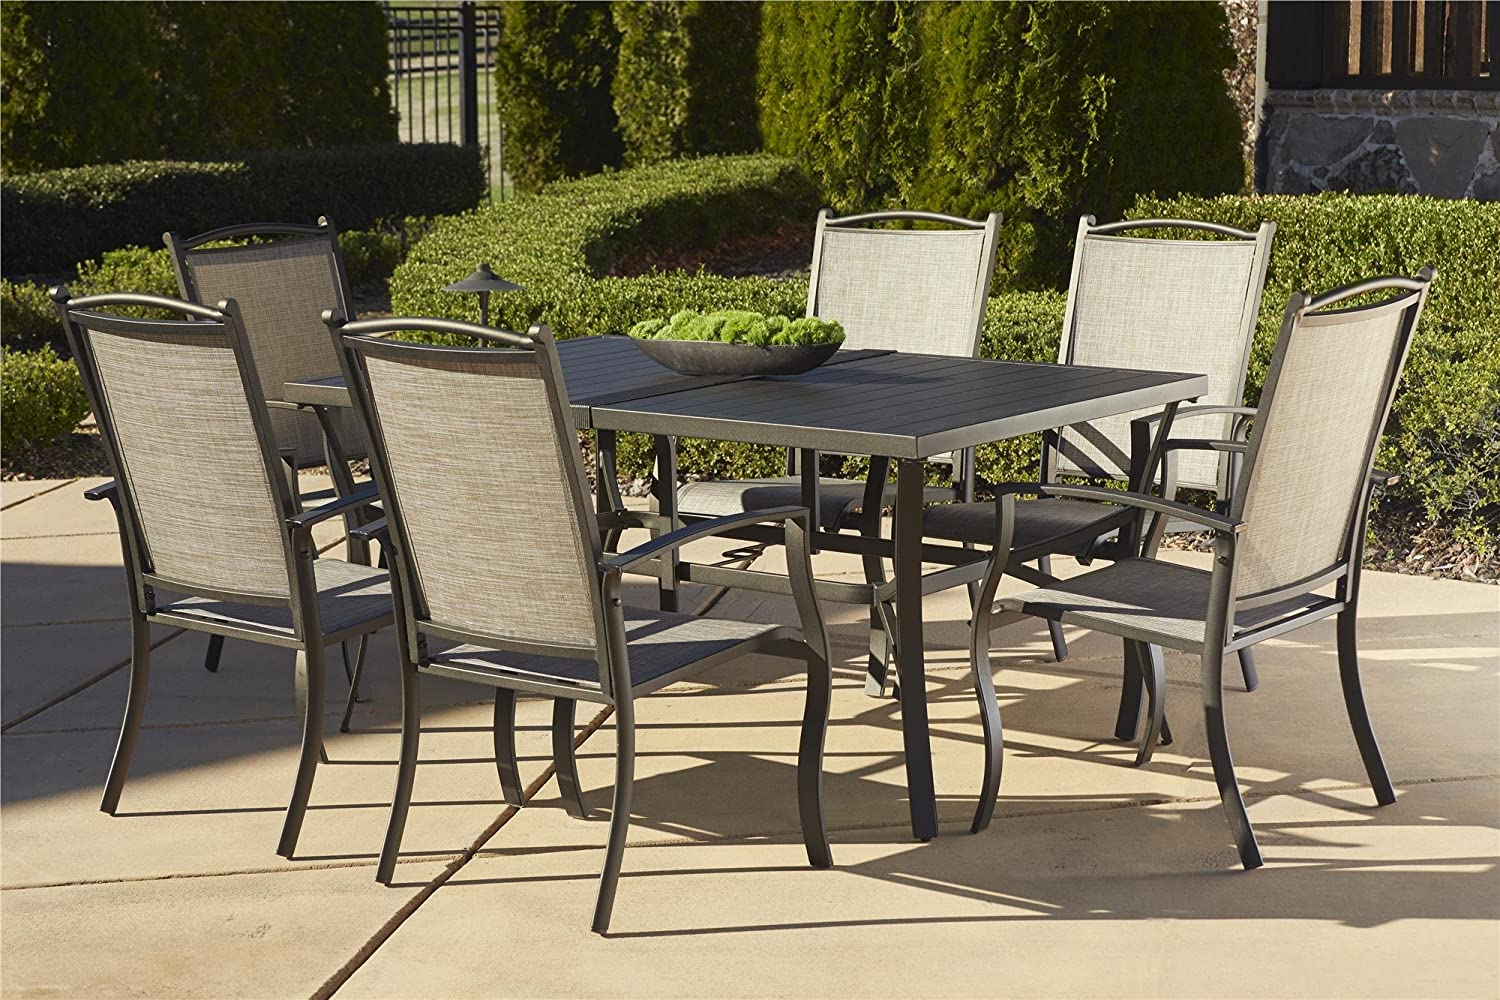 patio set pd dining cascade oakland metal piece shop sling frame black living